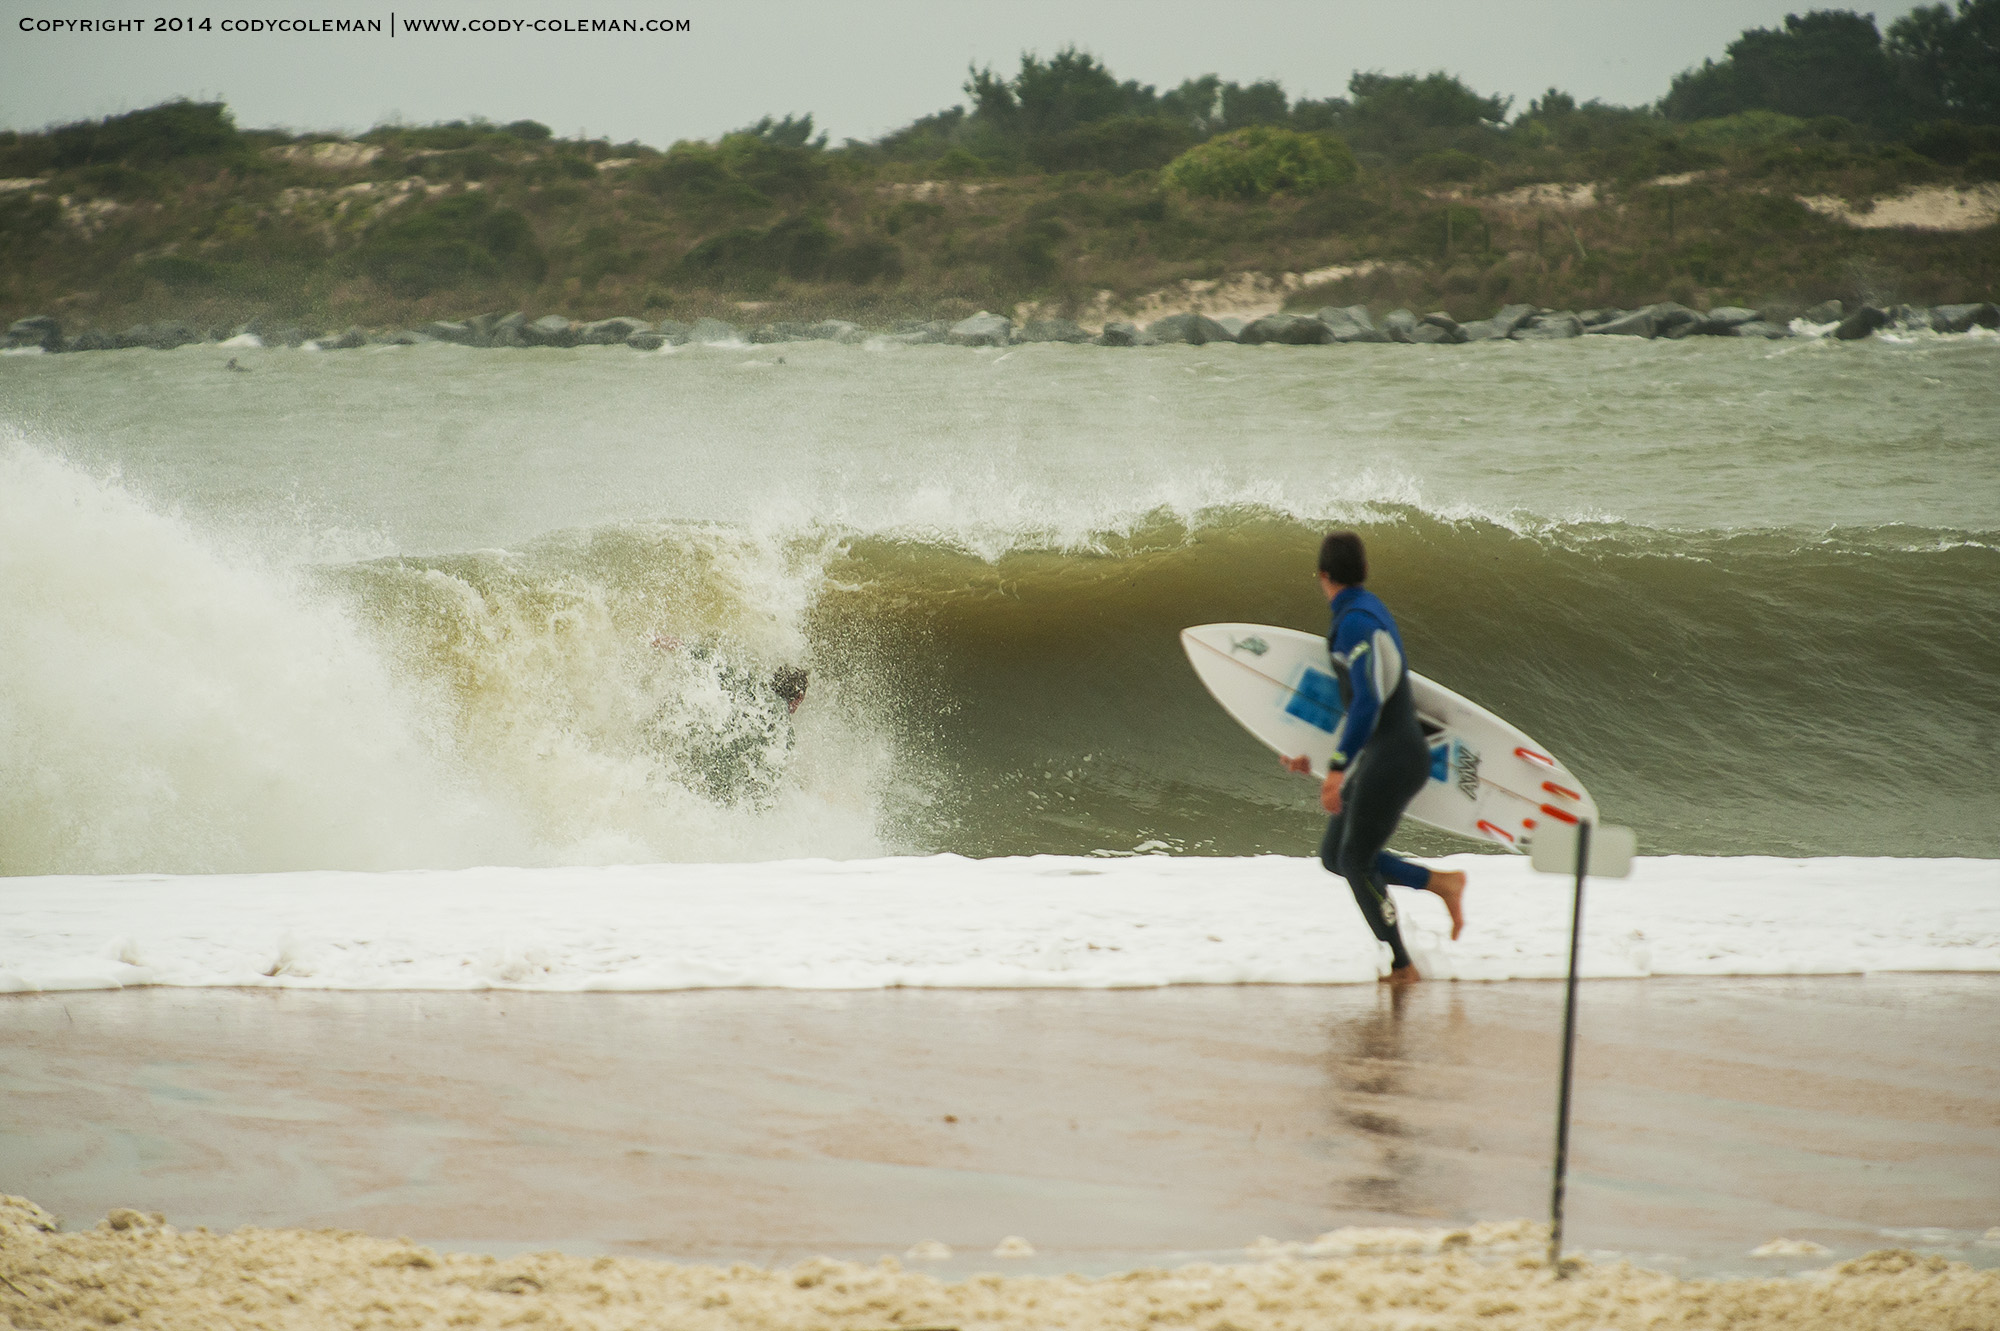 Andrew trying to backdoor a fast one.